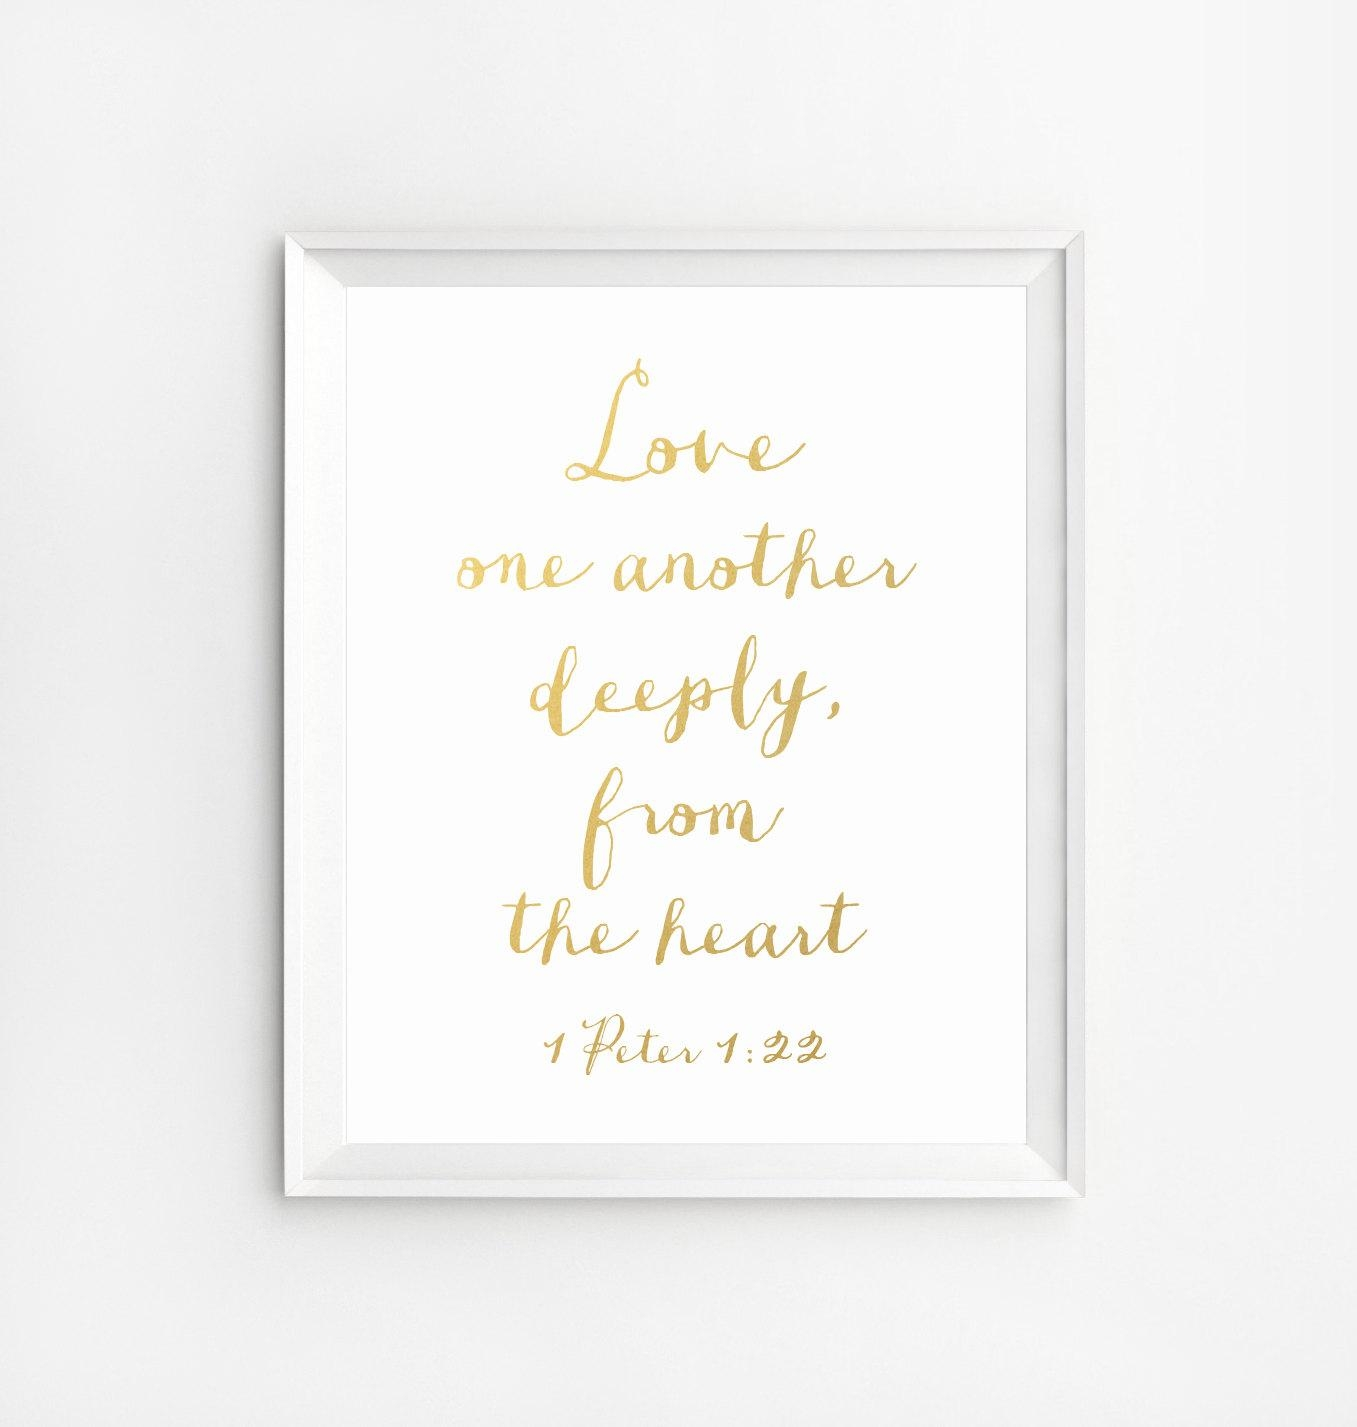 Bible Verse Wall Art Decor Scripture Print Gold Gold Foil Inside Grace Wall Art (View 15 of 20)